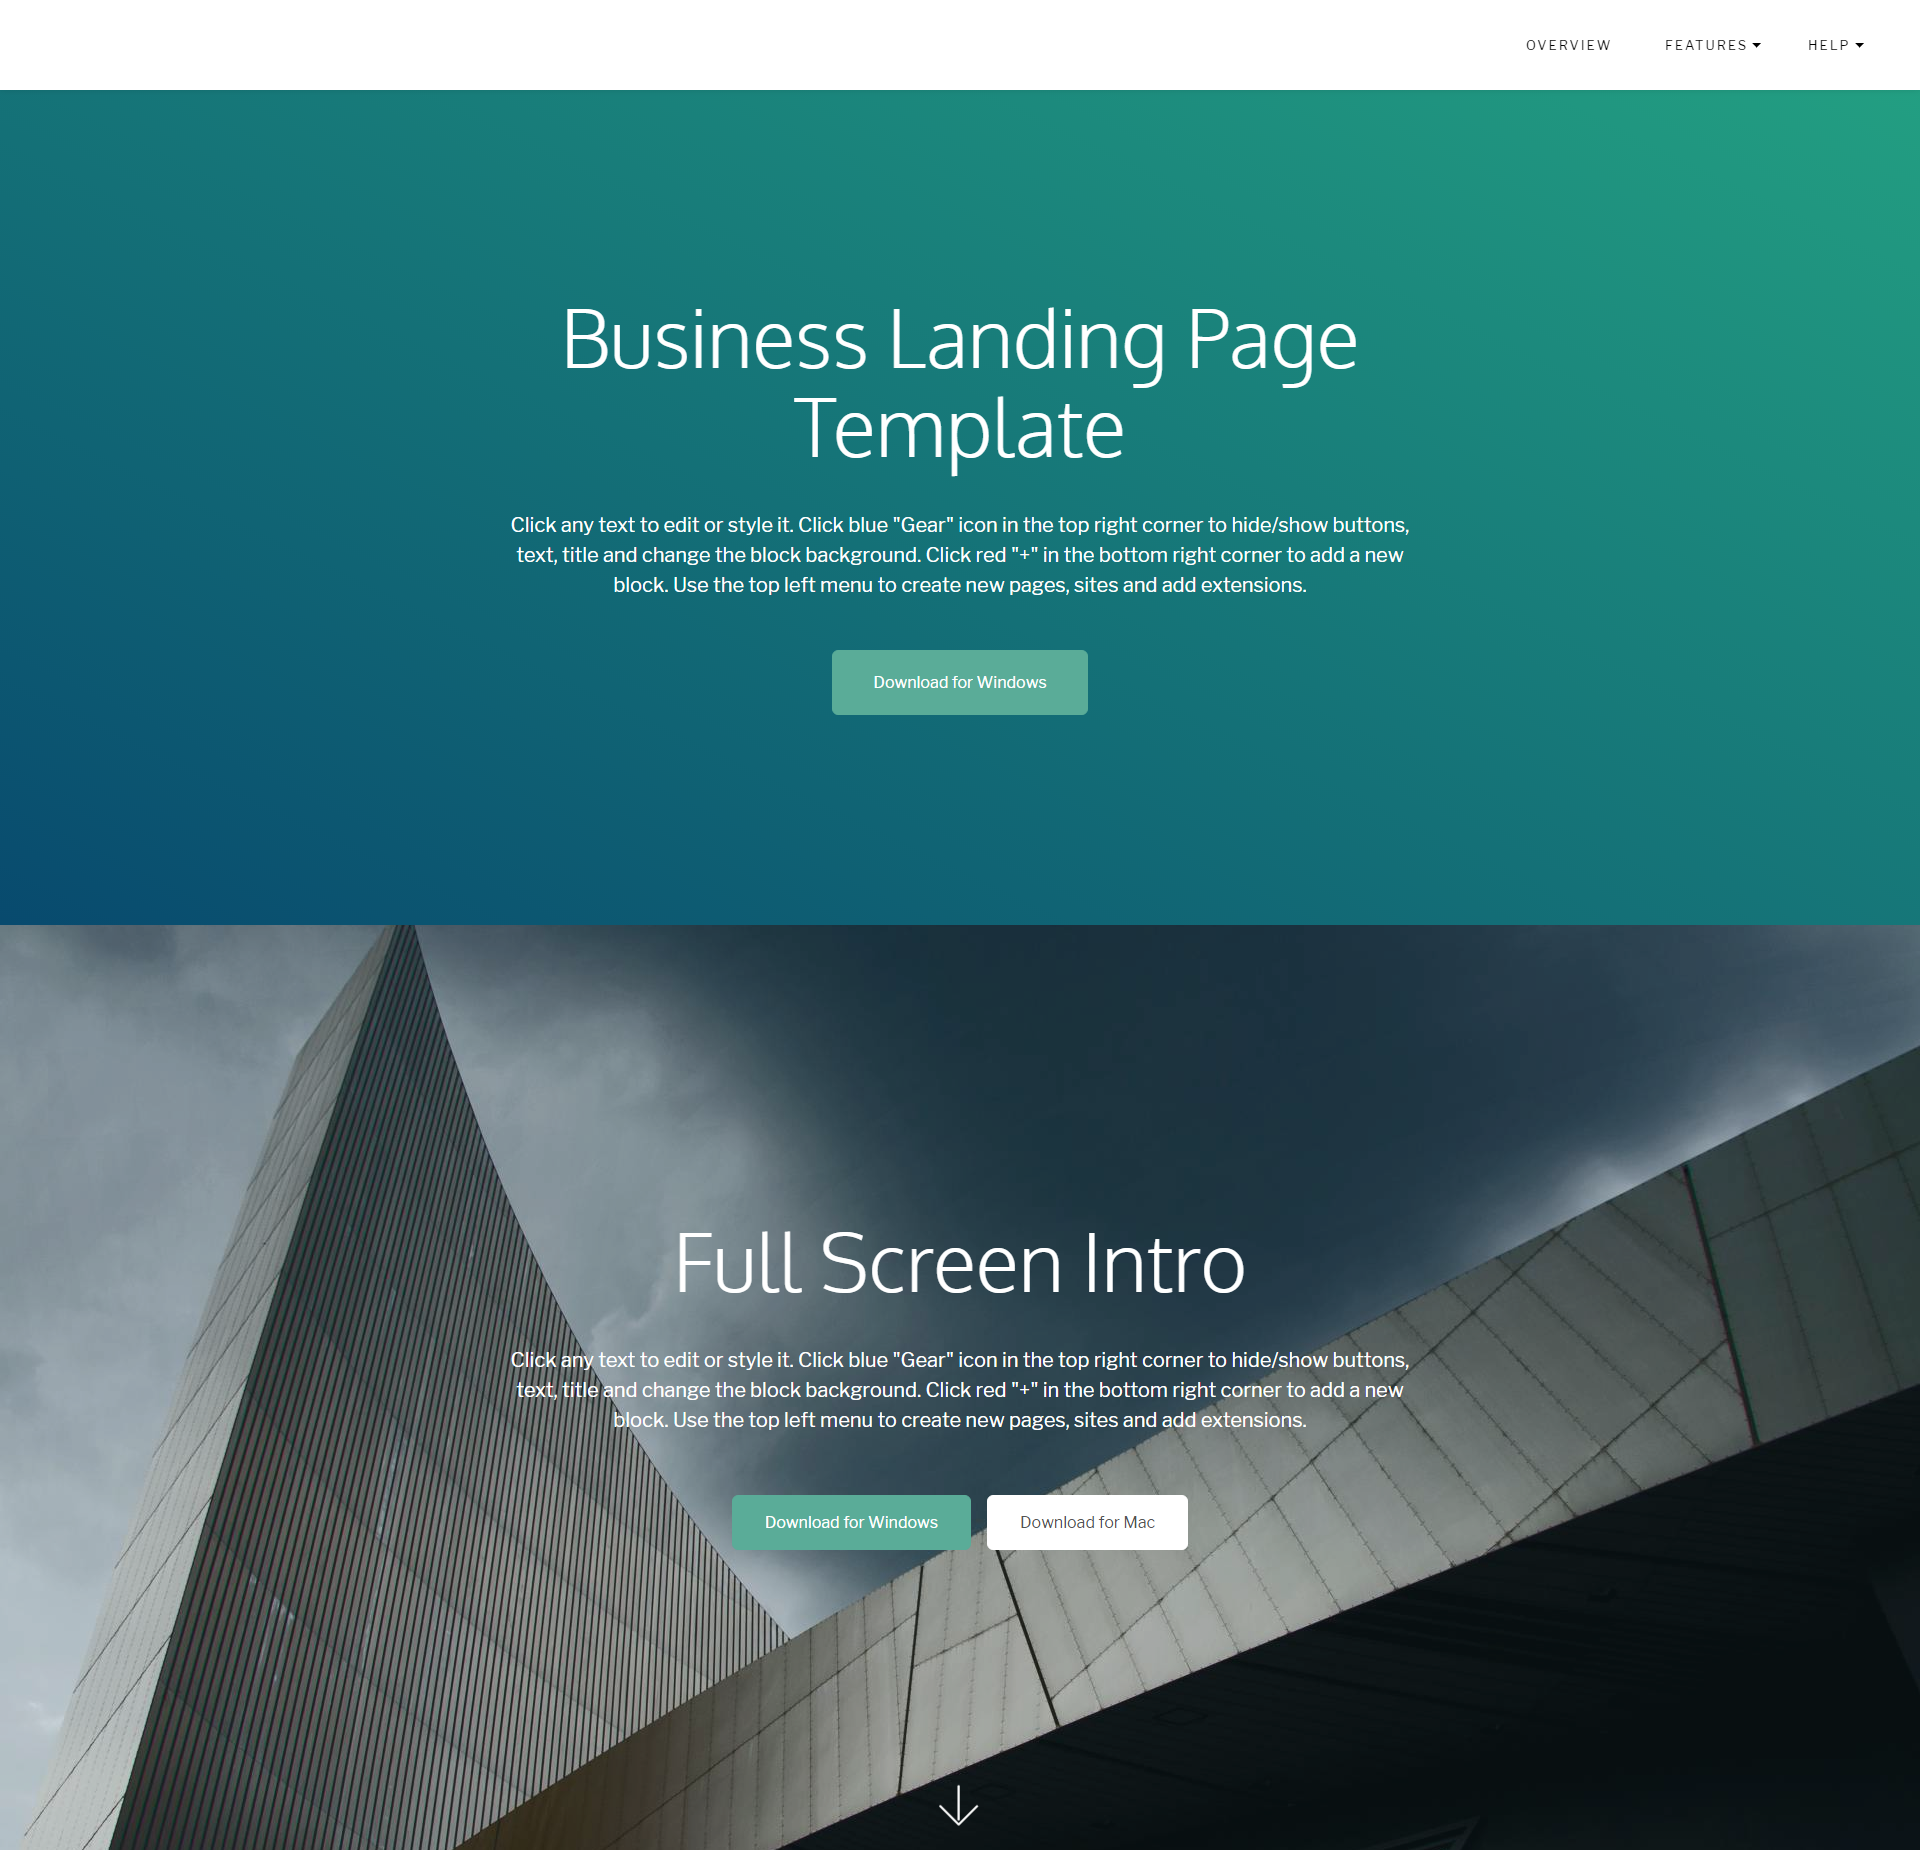 35 beautiful free bootstrap templates 2018 free download business landing page template css3 bootstrap business landing page themes accmission Gallery